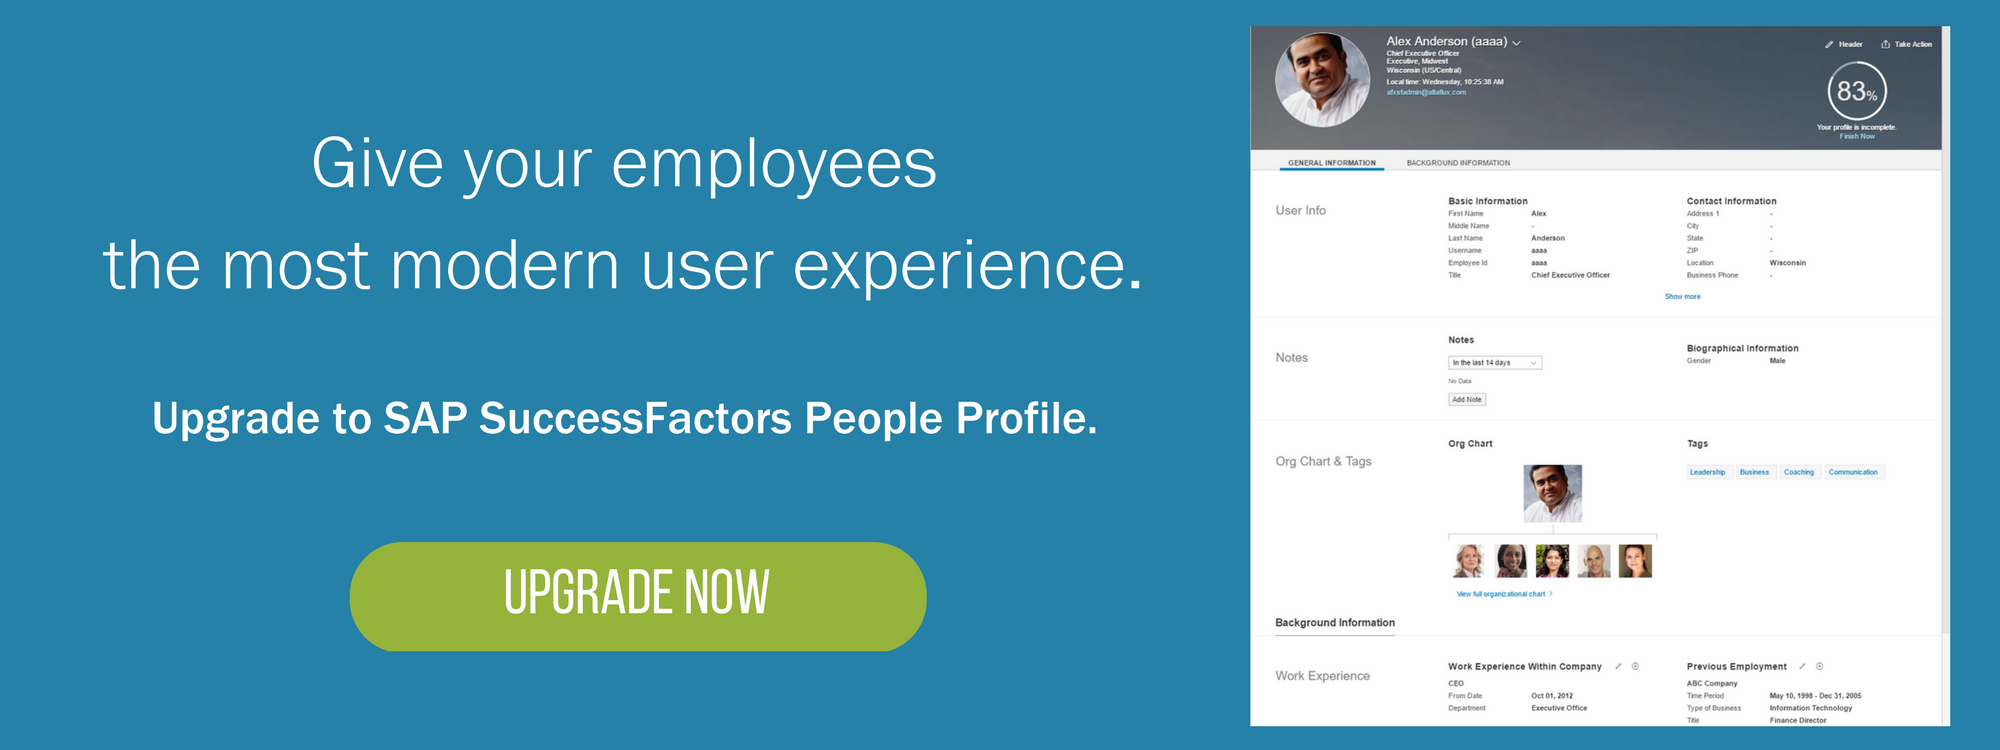 SAP SuccessFactors Employee Profile to People Profile – Employee Profile